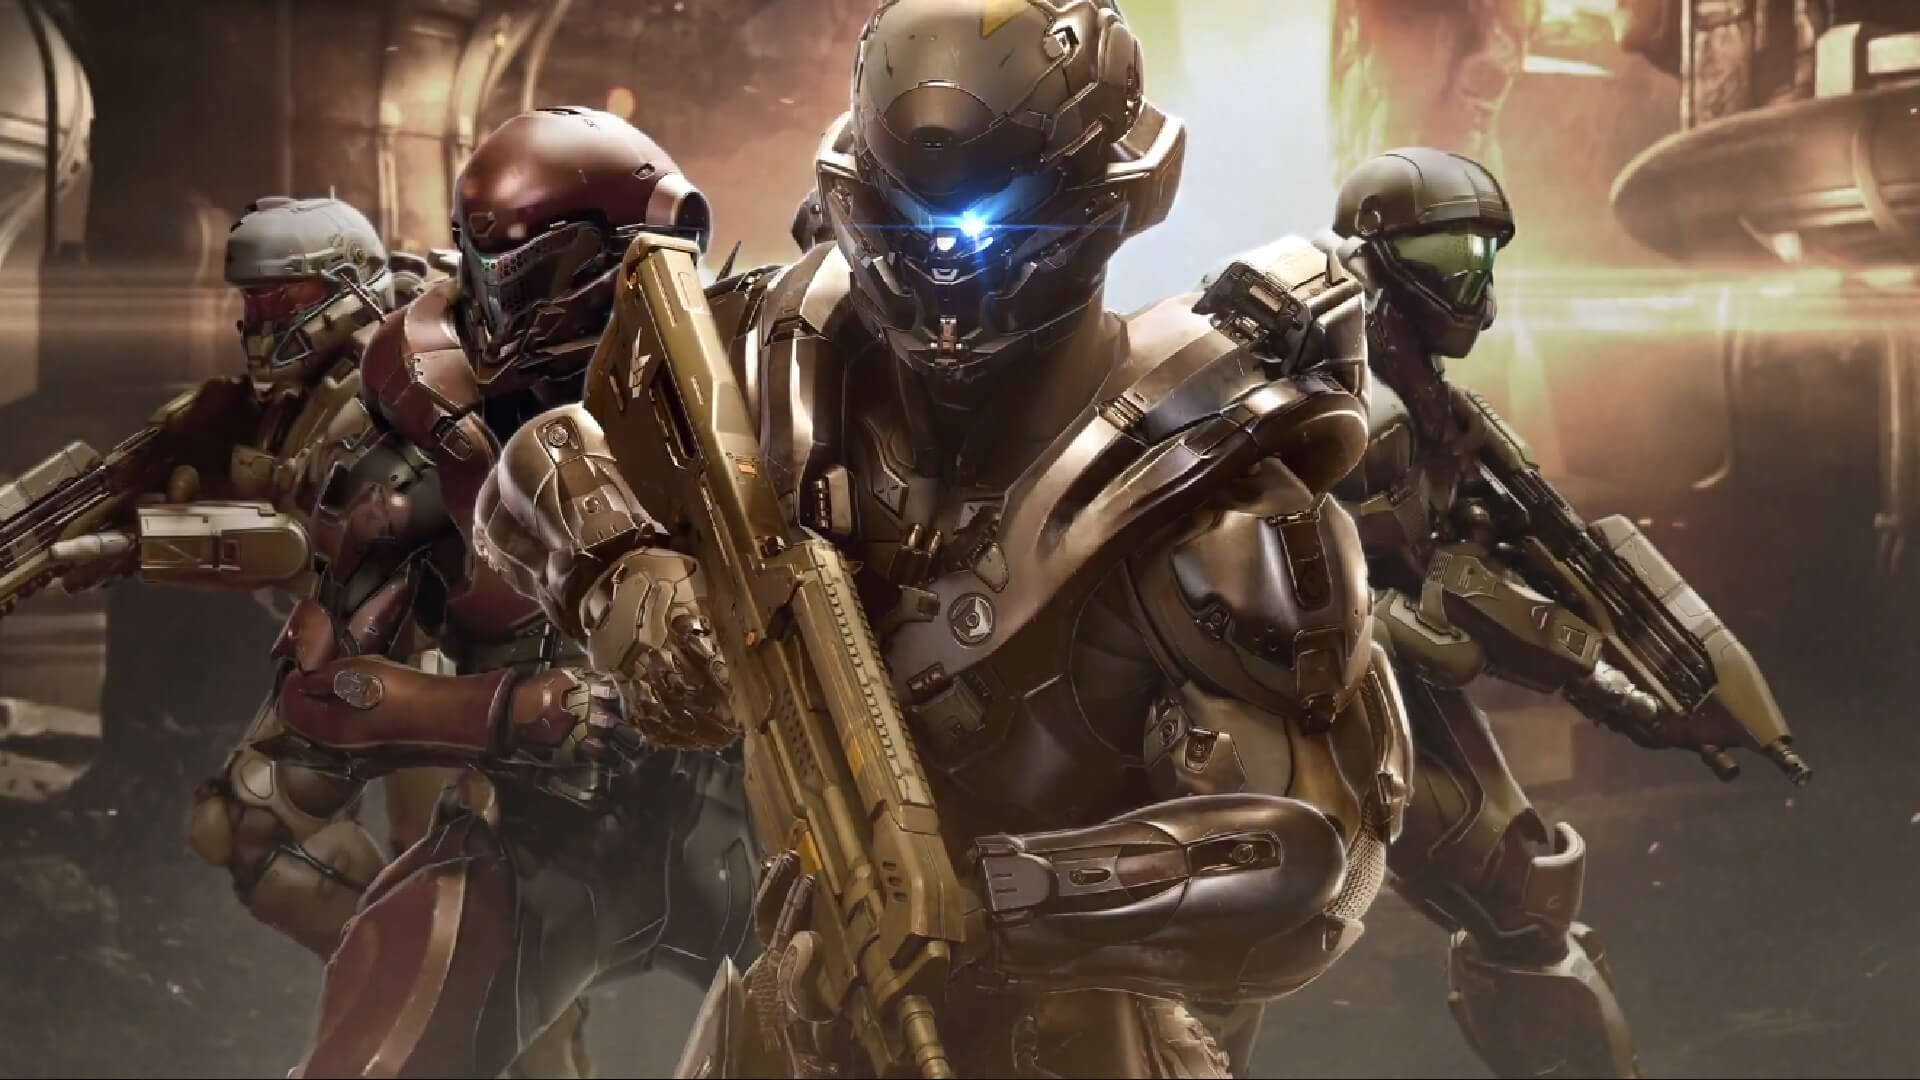 Official 'Halo 5: Guardians' Story Details Revealed